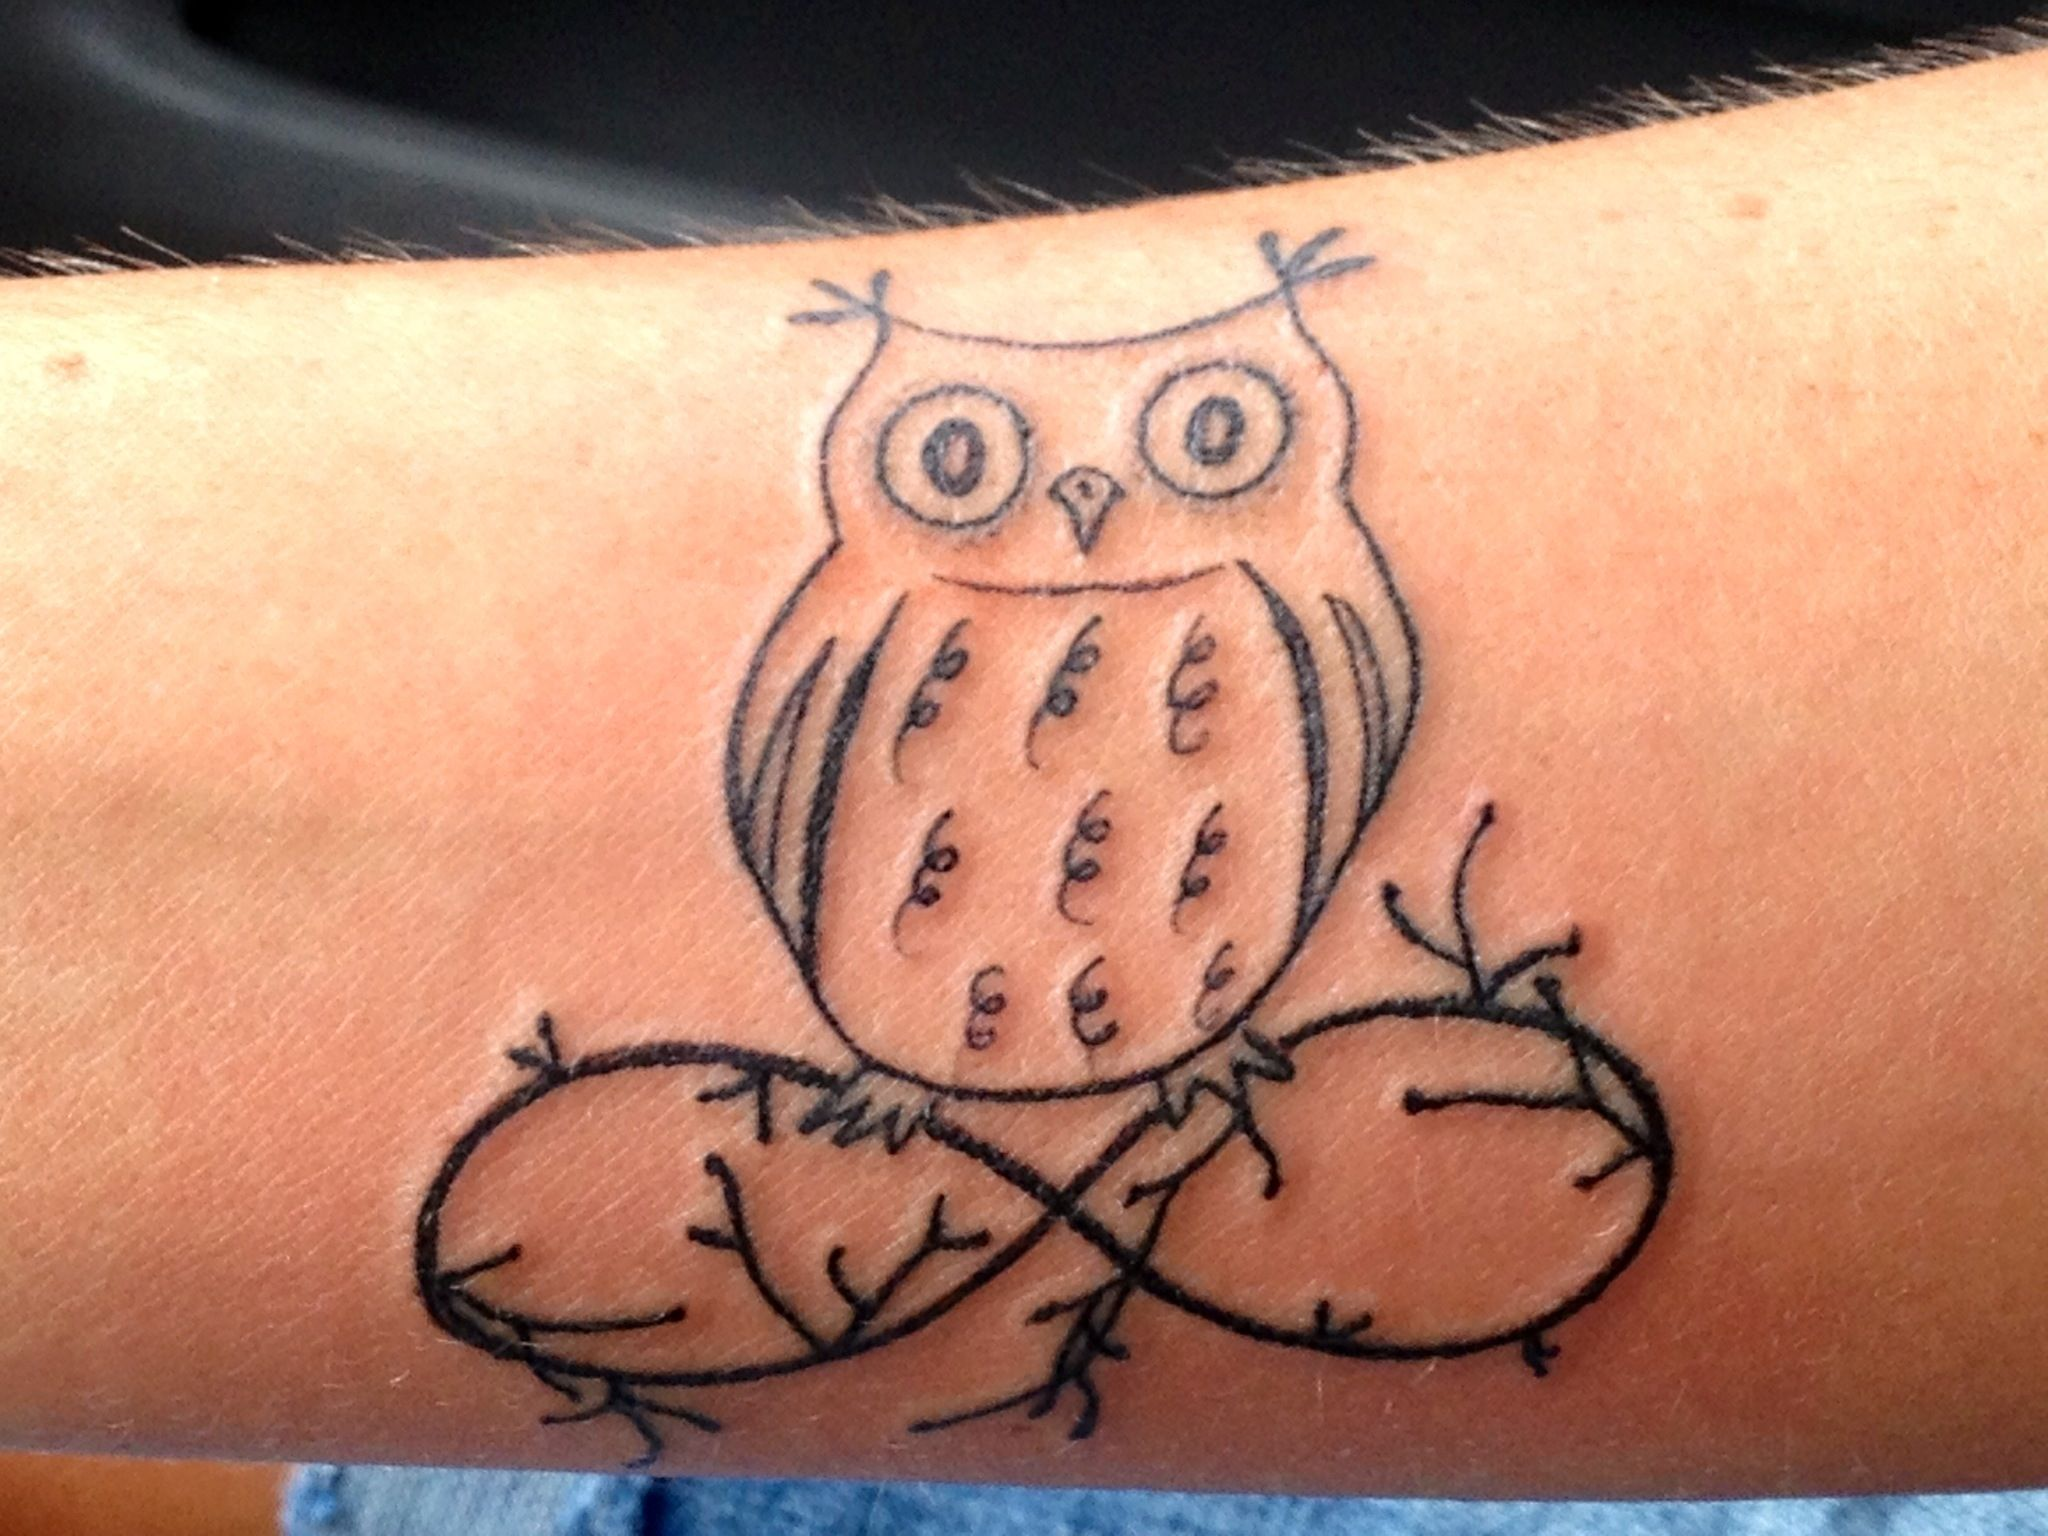 21 best projects to try images on pinterest tattoo ideas owl instead of having the owl sit on the infinity symbol incorporate the symbol in the owls eyes small tattoo of just owl head on wrist to symbol how the biocorpaavc Images